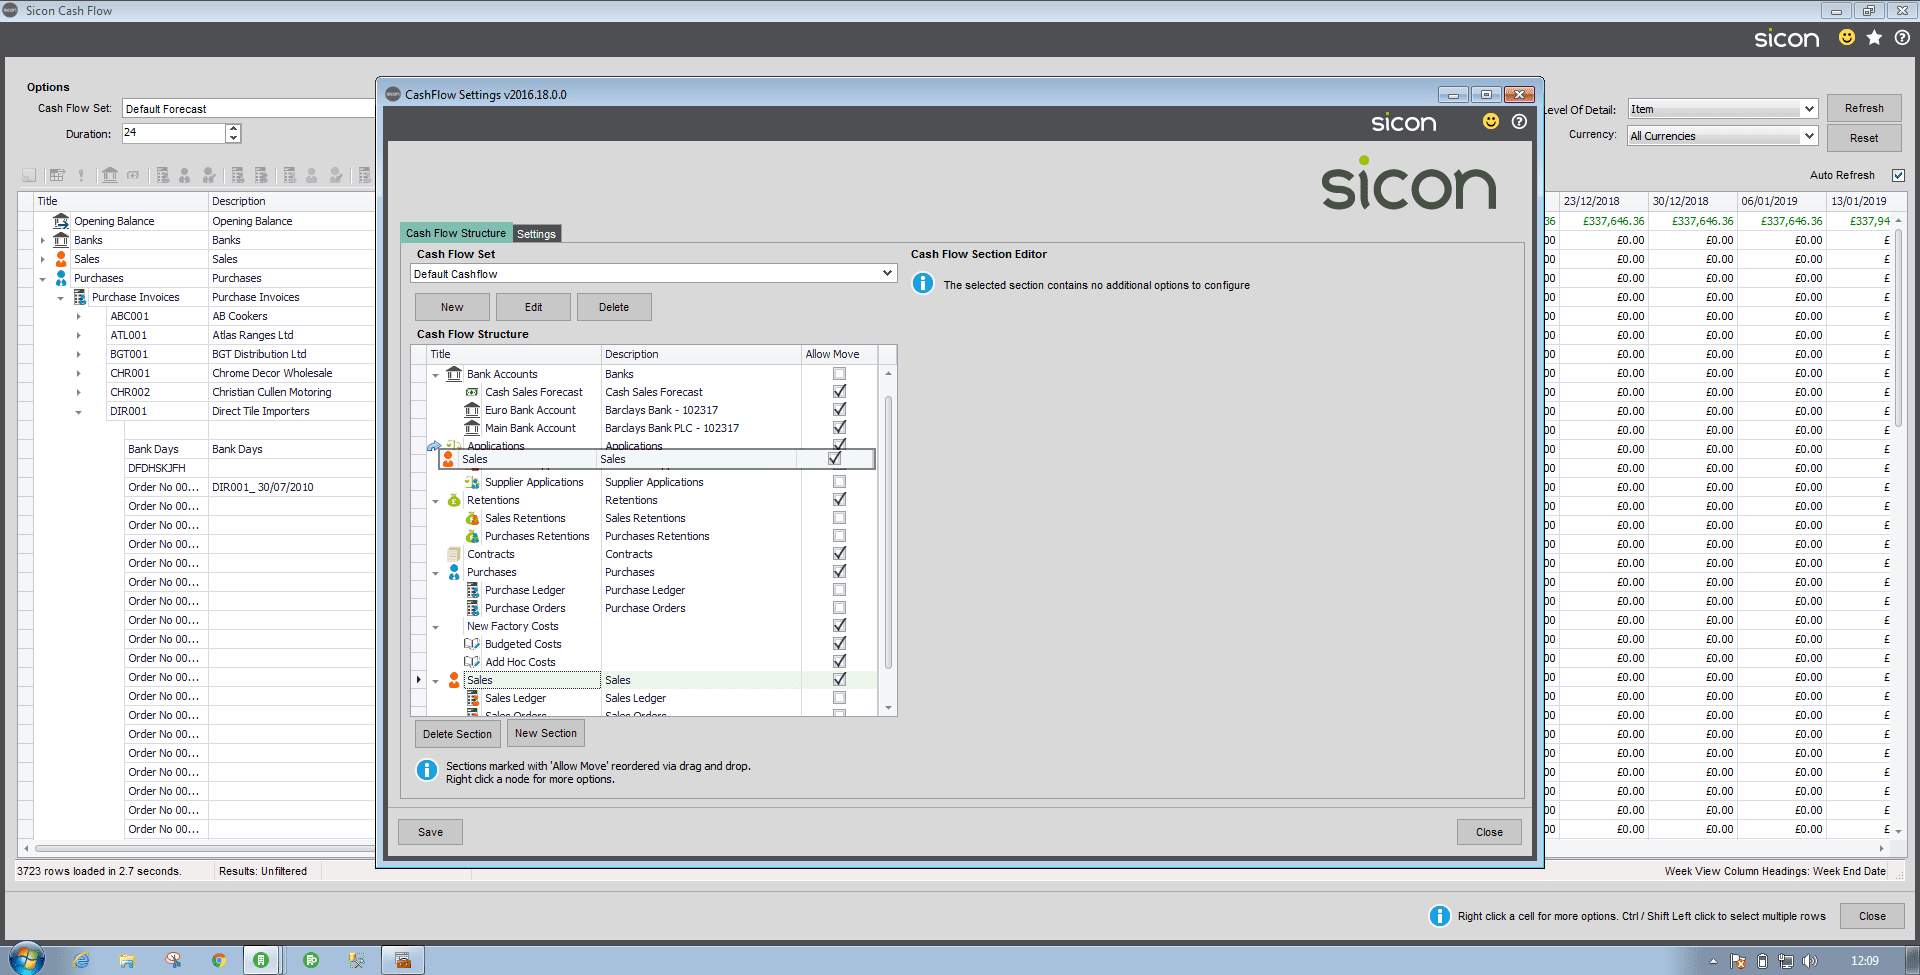 Sicon Cash Flow Help and User Guide - Adding / Amending Sections